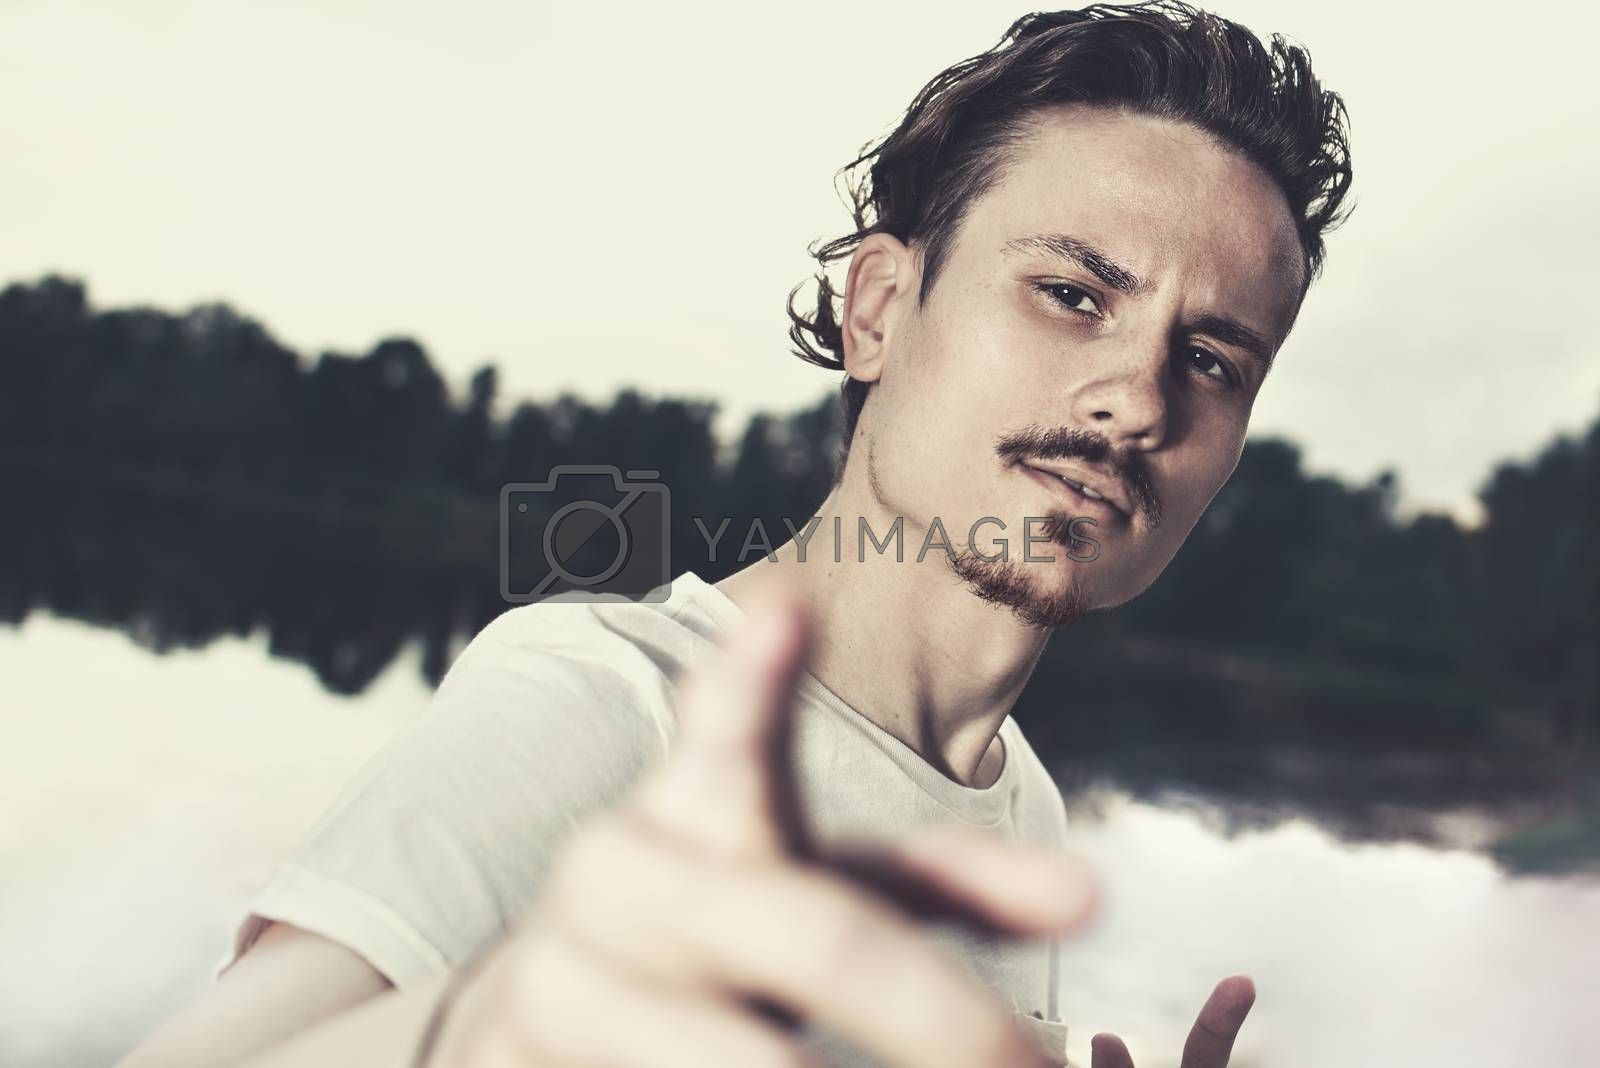 portrait of a brutal stylish guy aggressively looking into the camera. black and white photo. selfie photo. the guy challenges the opponent. provokes conflict